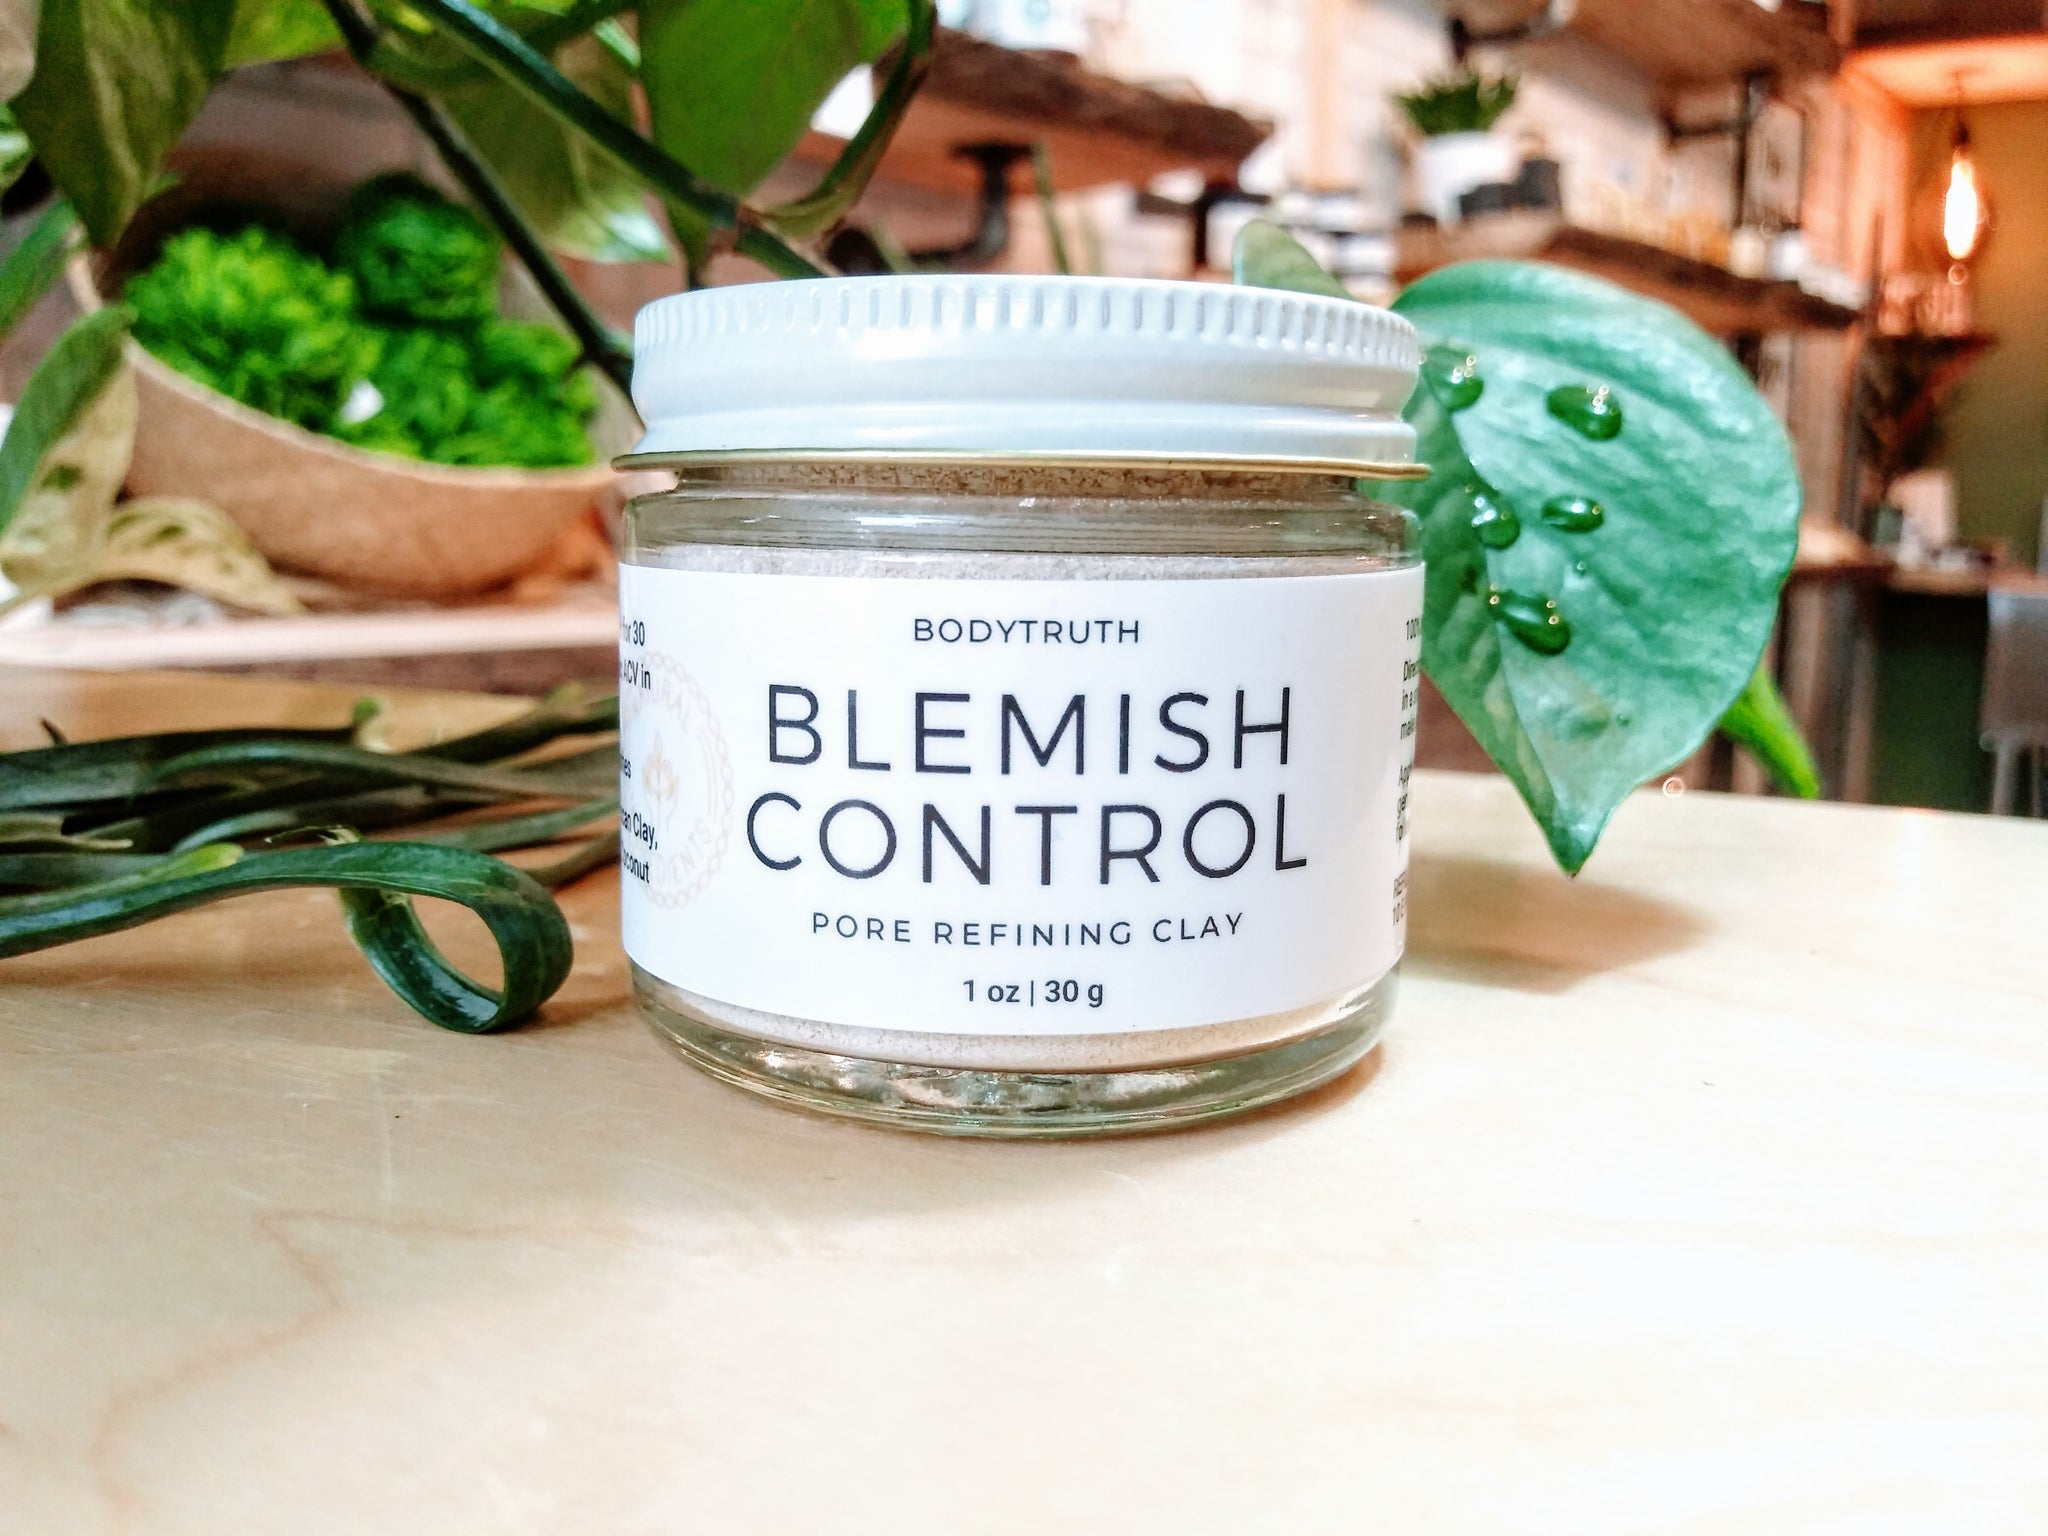 BLEMISH CONTROL, a Complexion Boosting Face Masks, Bodytruth Soap Apothecary in Lawrence, KS